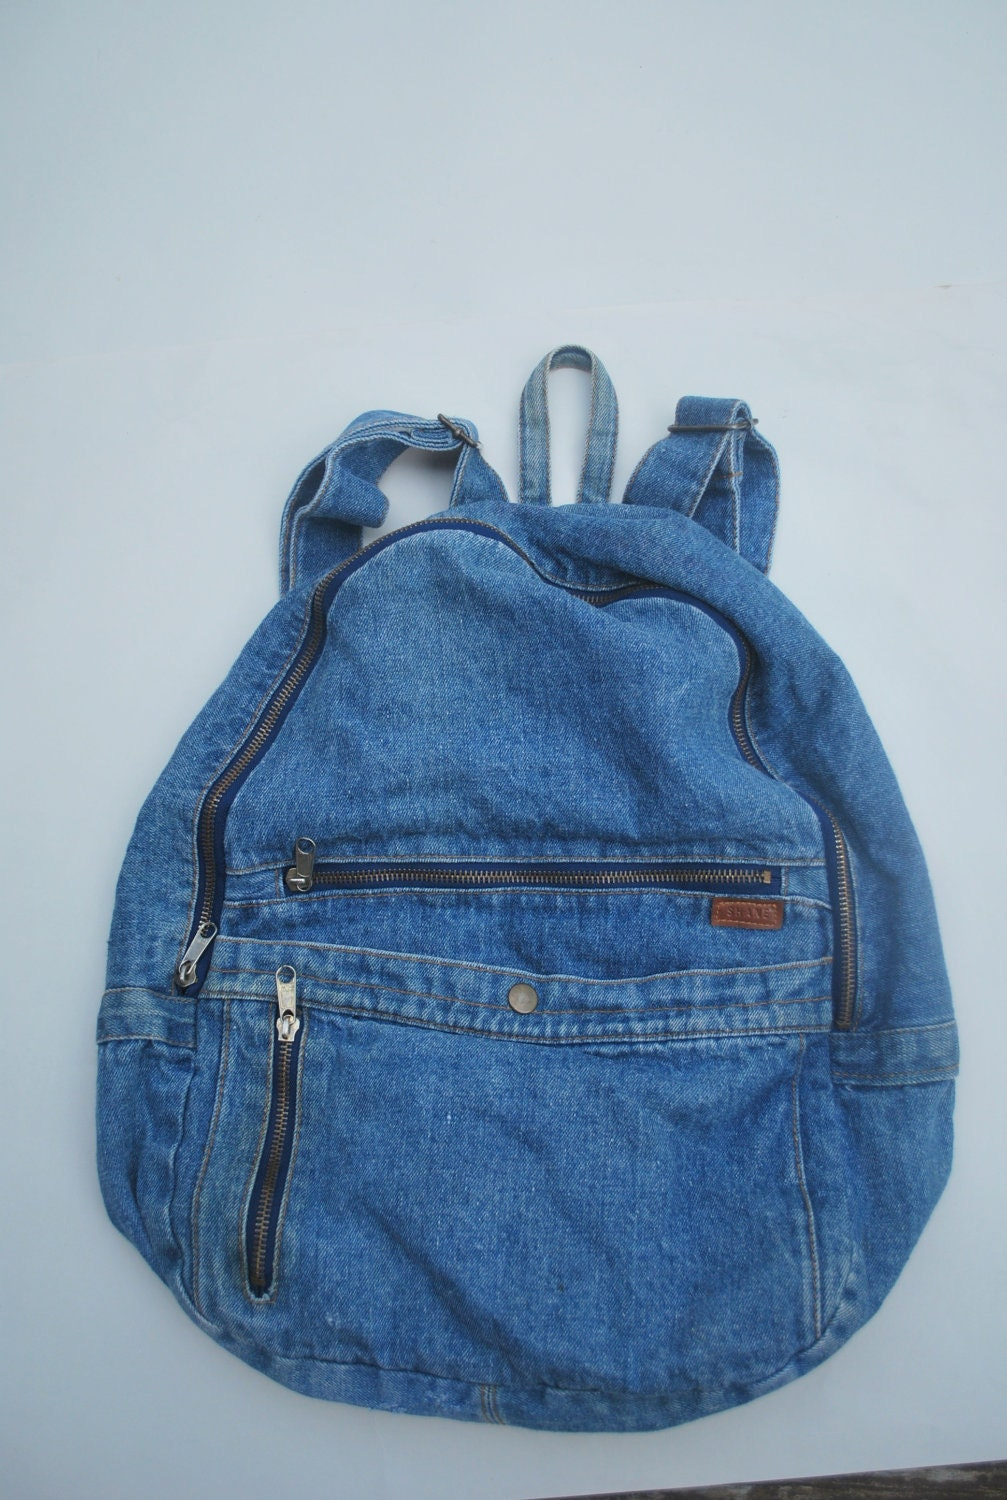 Shop for light denim backpack online at Target. Free shipping on purchases over $35 and save 5% every day with your Target REDcard.